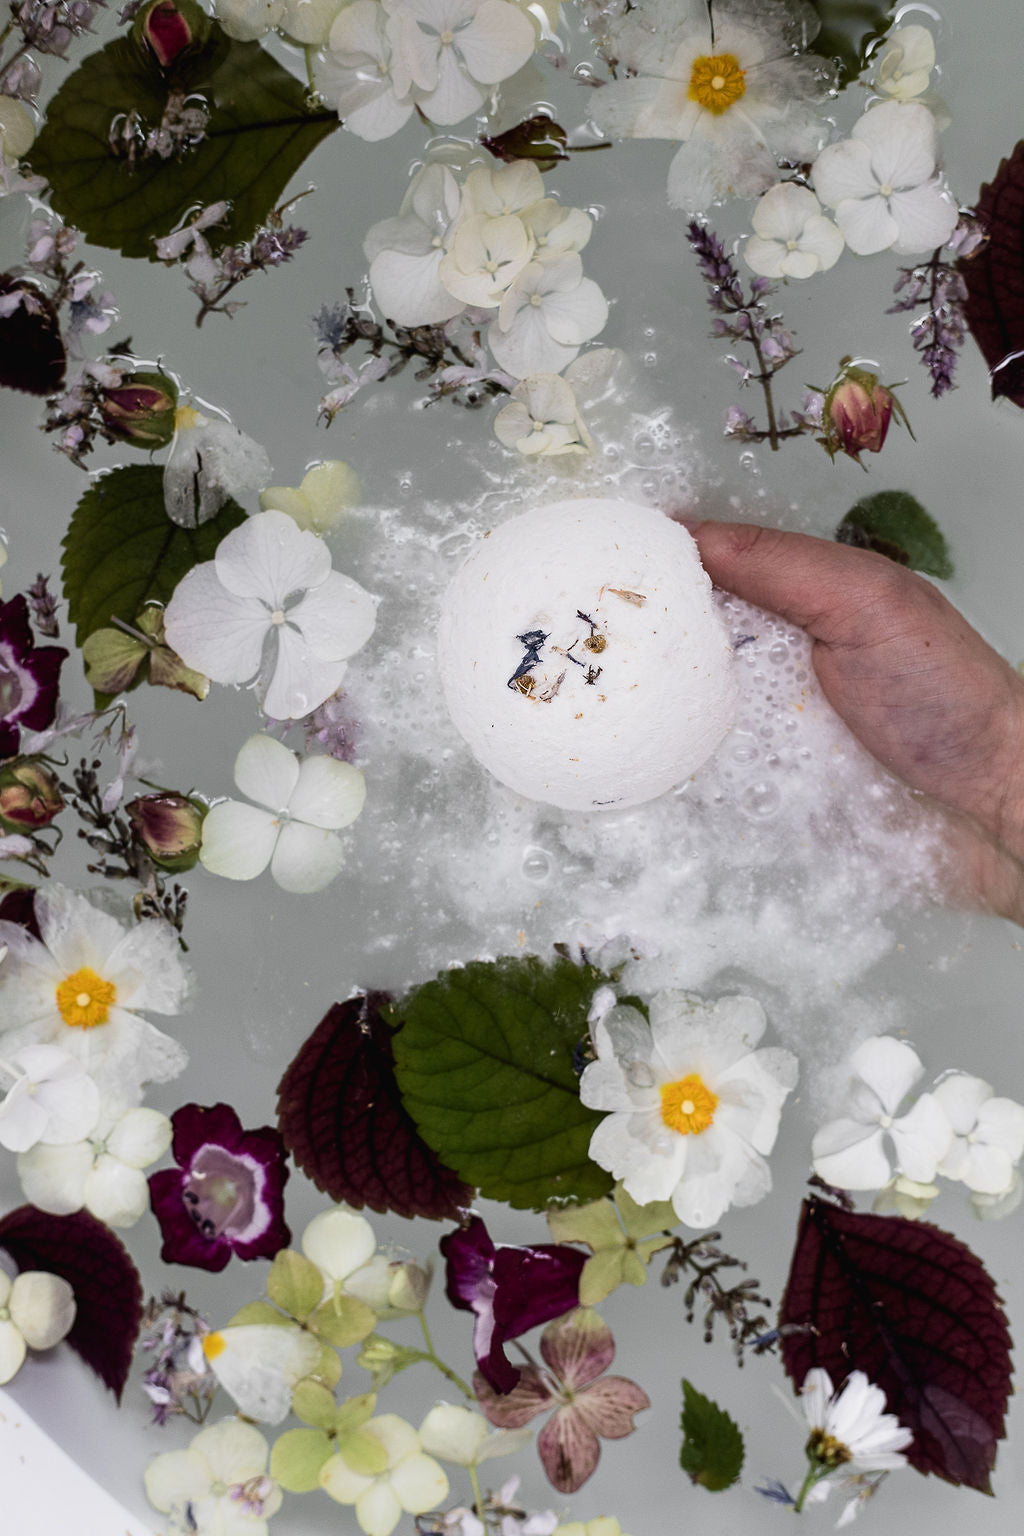 'Peace' Bath Bomb by Urthly Organics